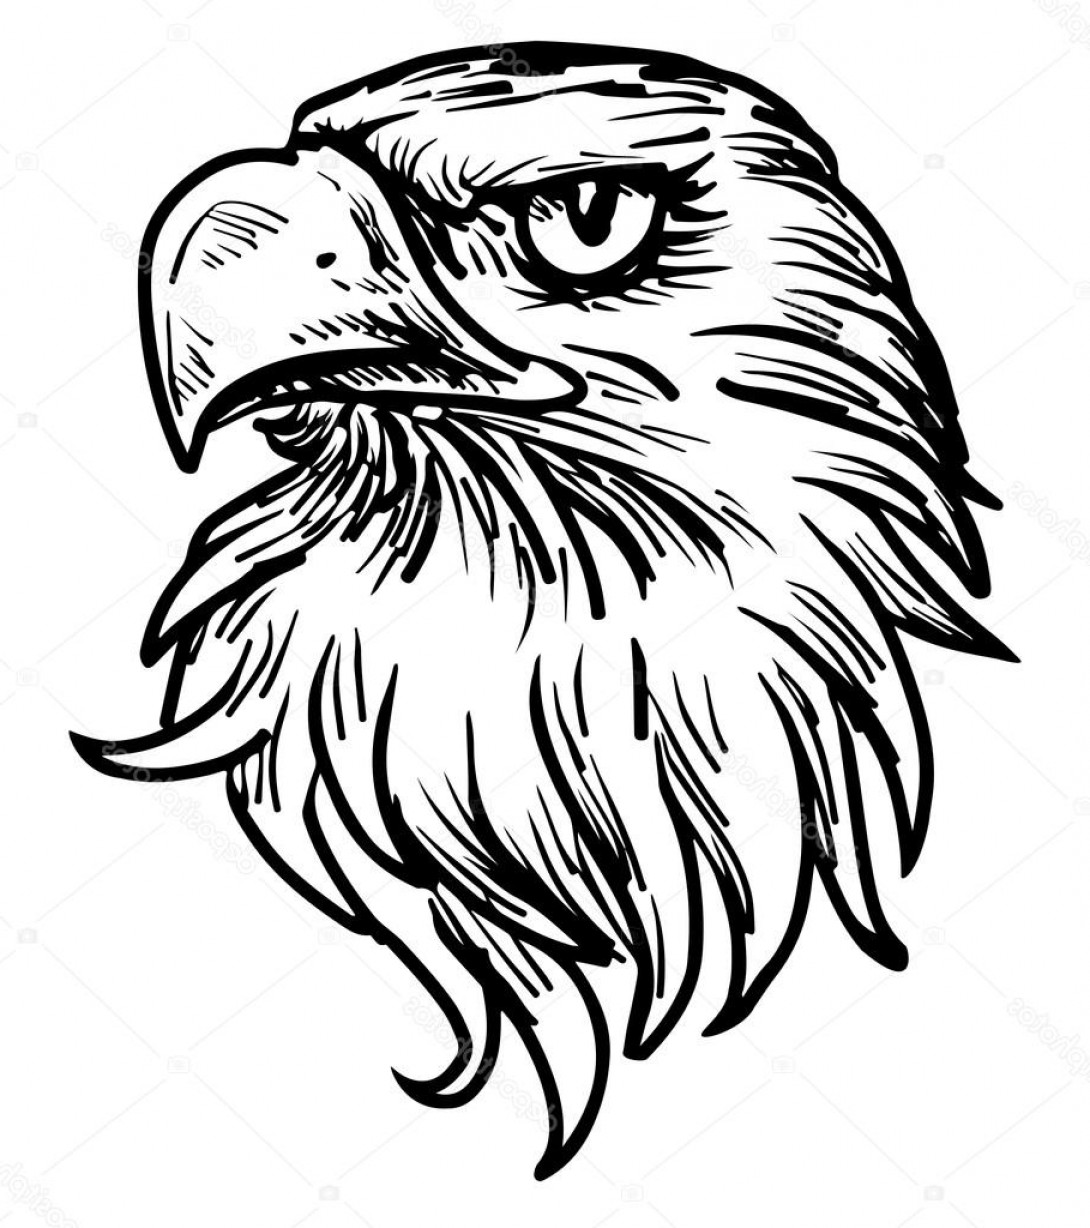 Stock Illustration Hand Drawn Eagle Head.